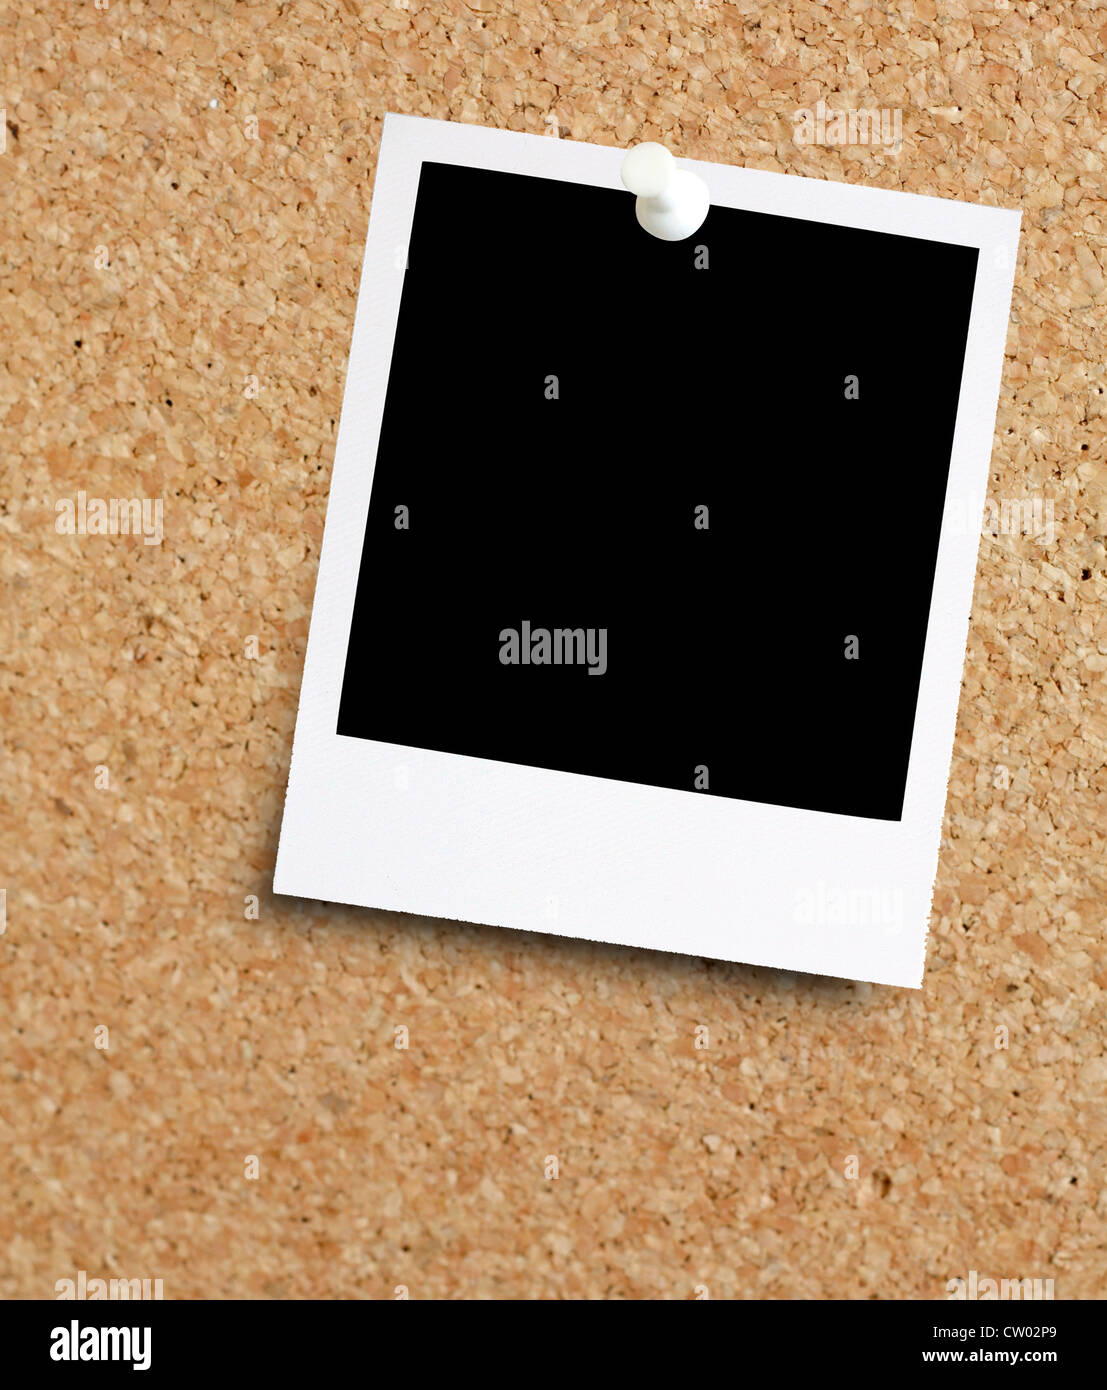 Instant photo on noticeboard - Stock Image